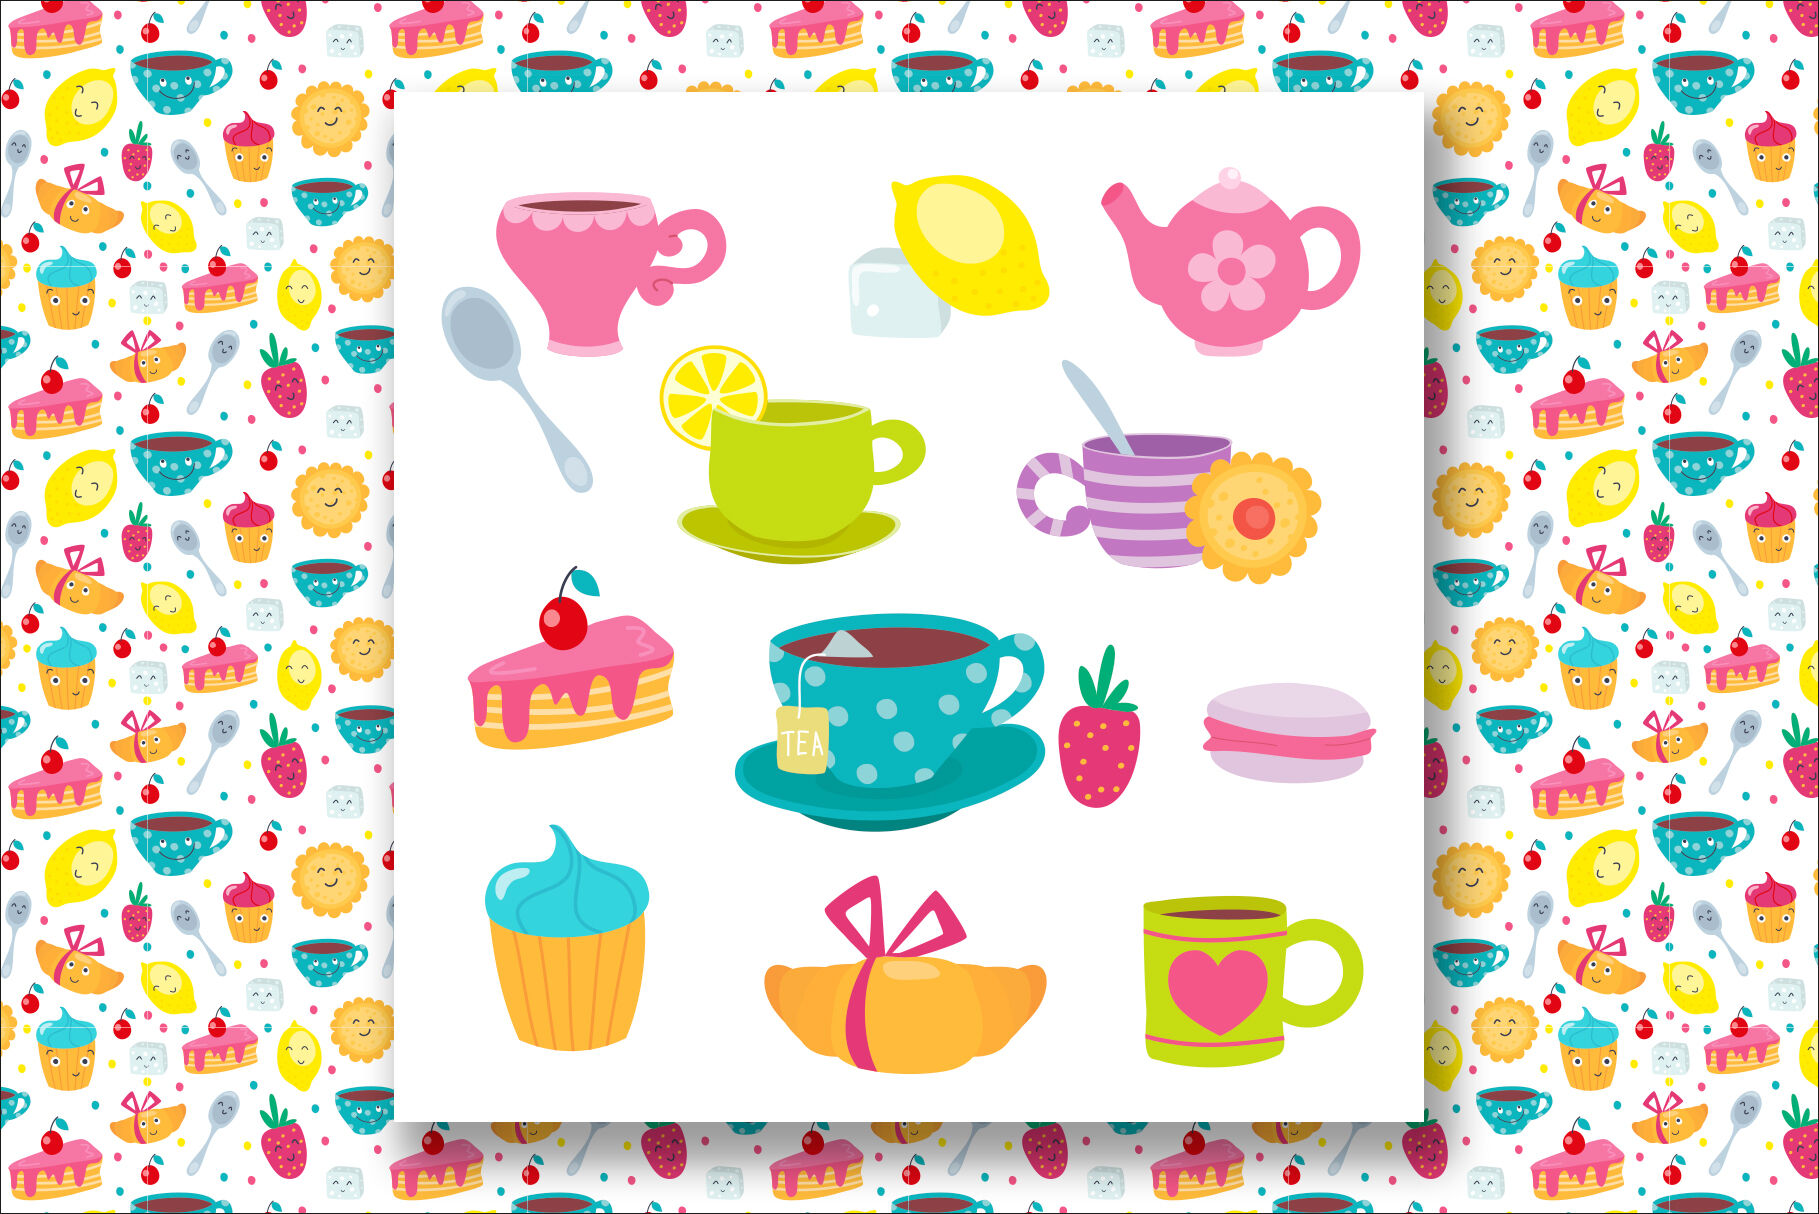 Cups And Sweets Funny Emojis By Nesterova S Shop Thehungryjpeg Com